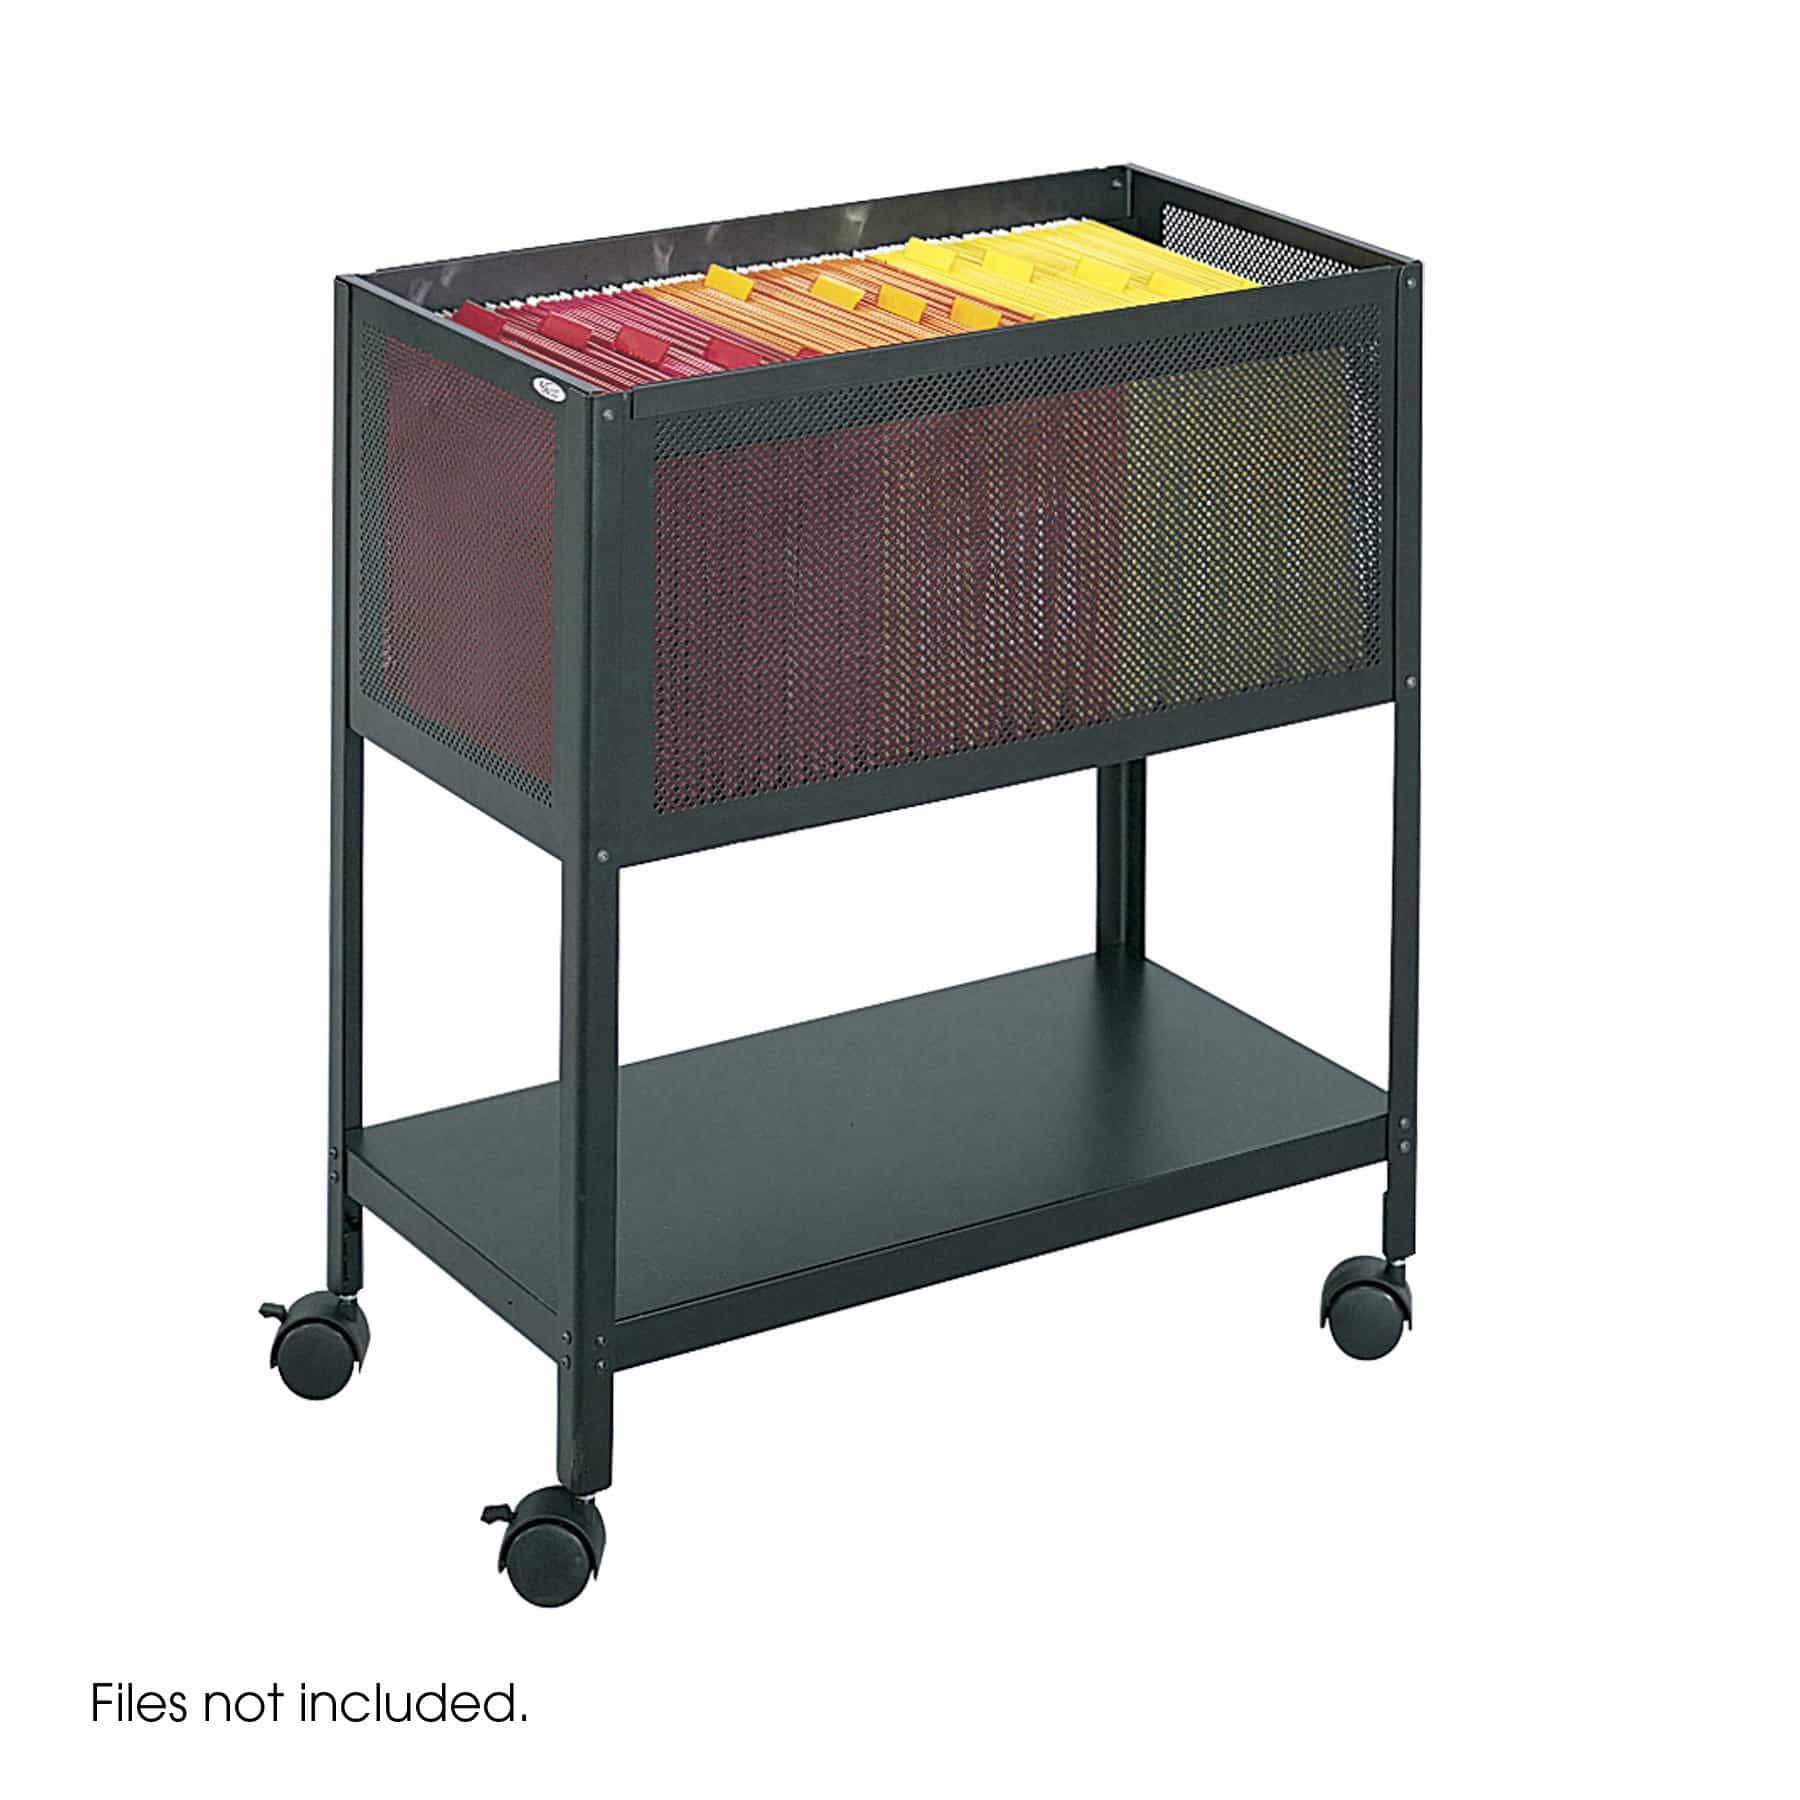 bedinhome - 5350BL Safco steel-mesh designed cart Open Top Tub four wheels Casters Files - Safco - Steel Filing Carts